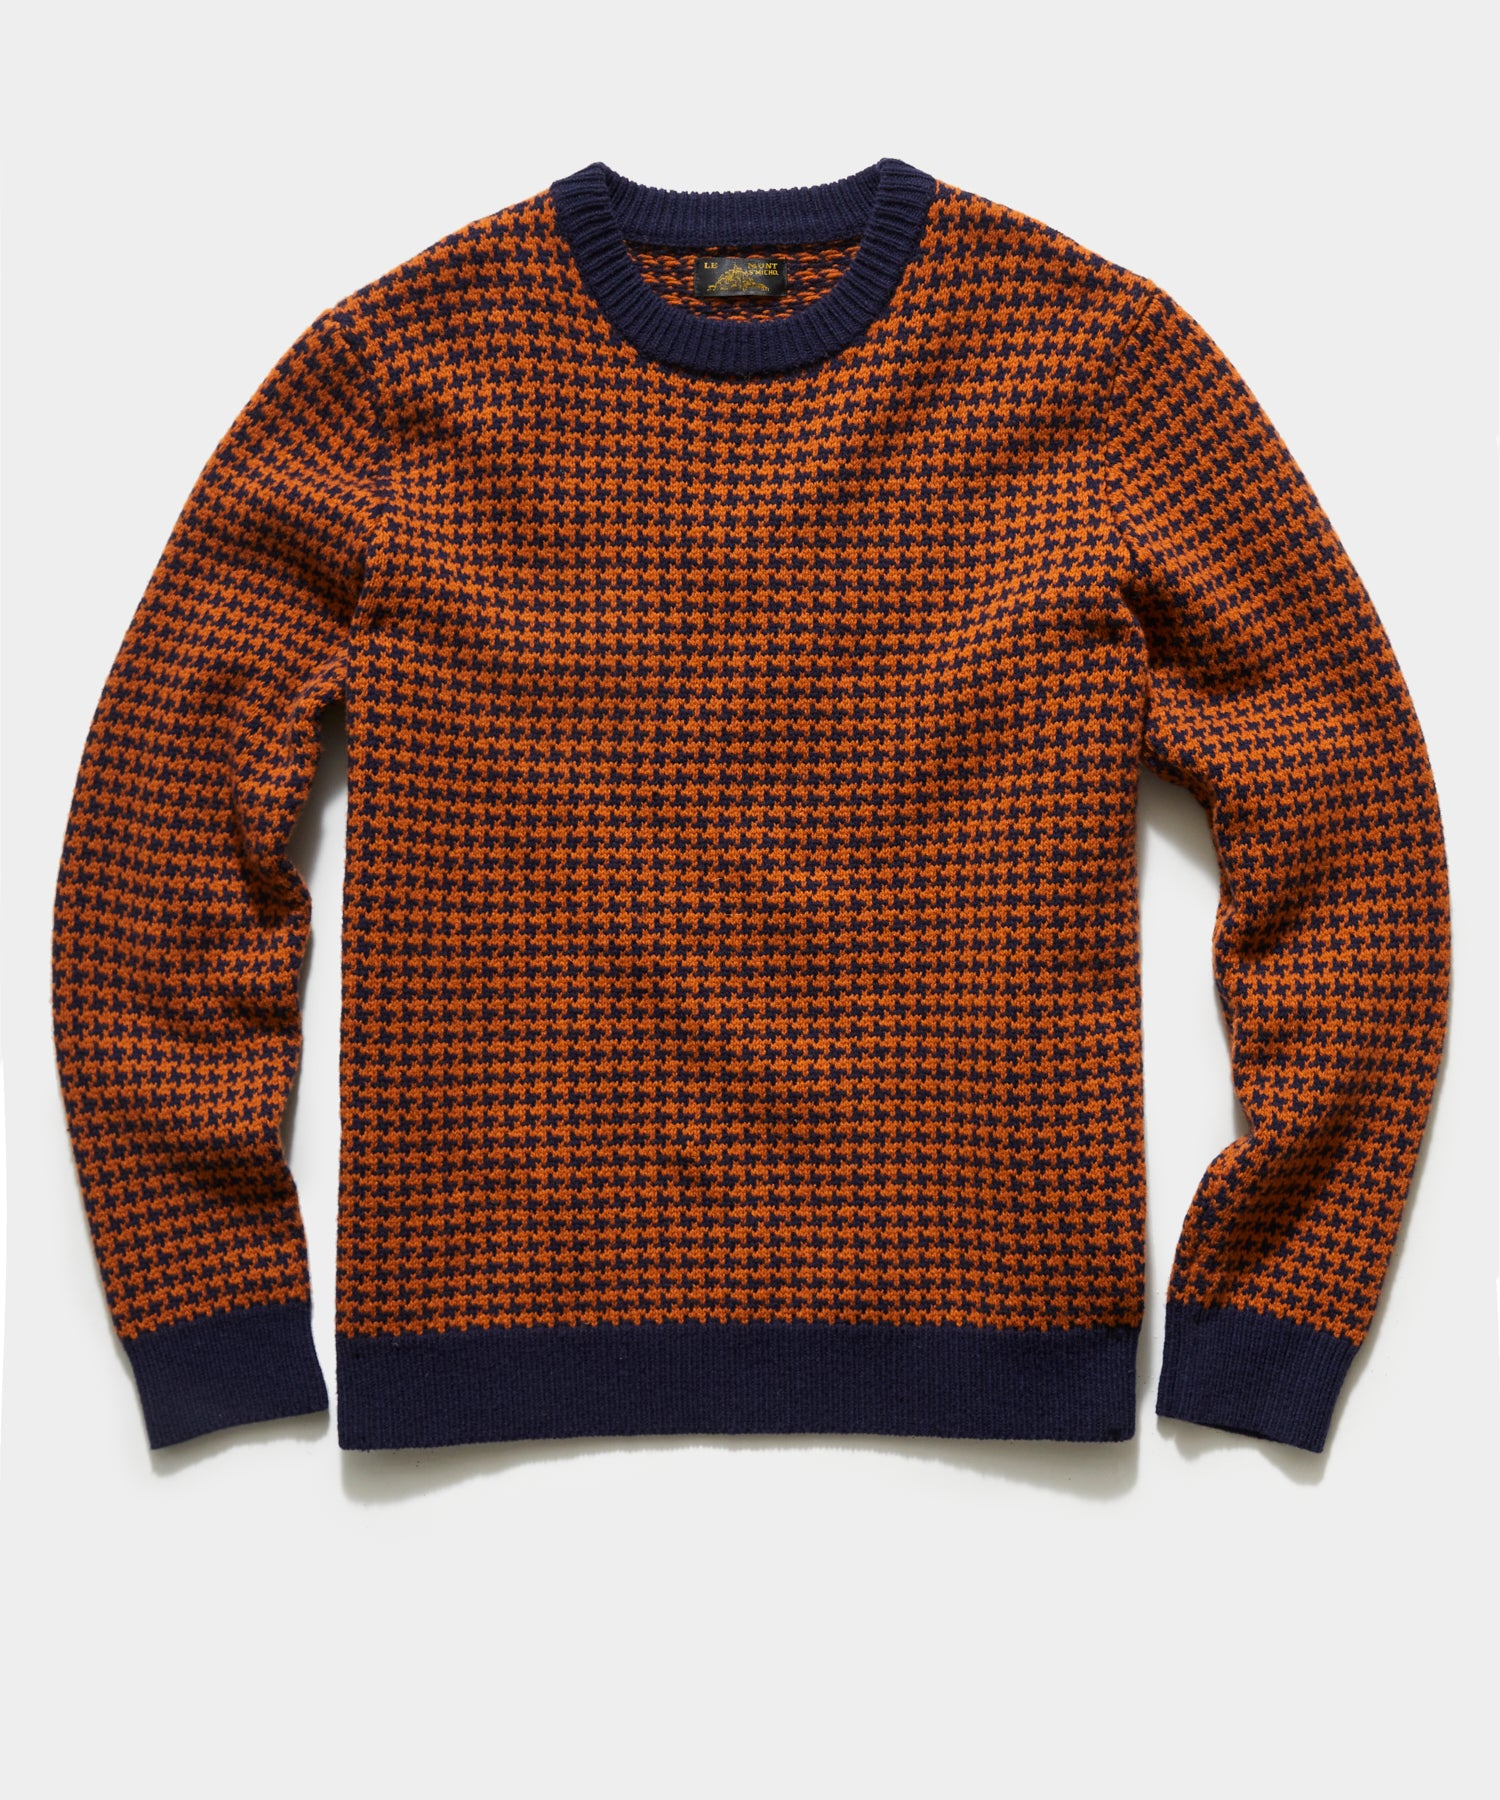 Le Mont St Michel Sabino Houndstooth Sweater in Navy/Curry